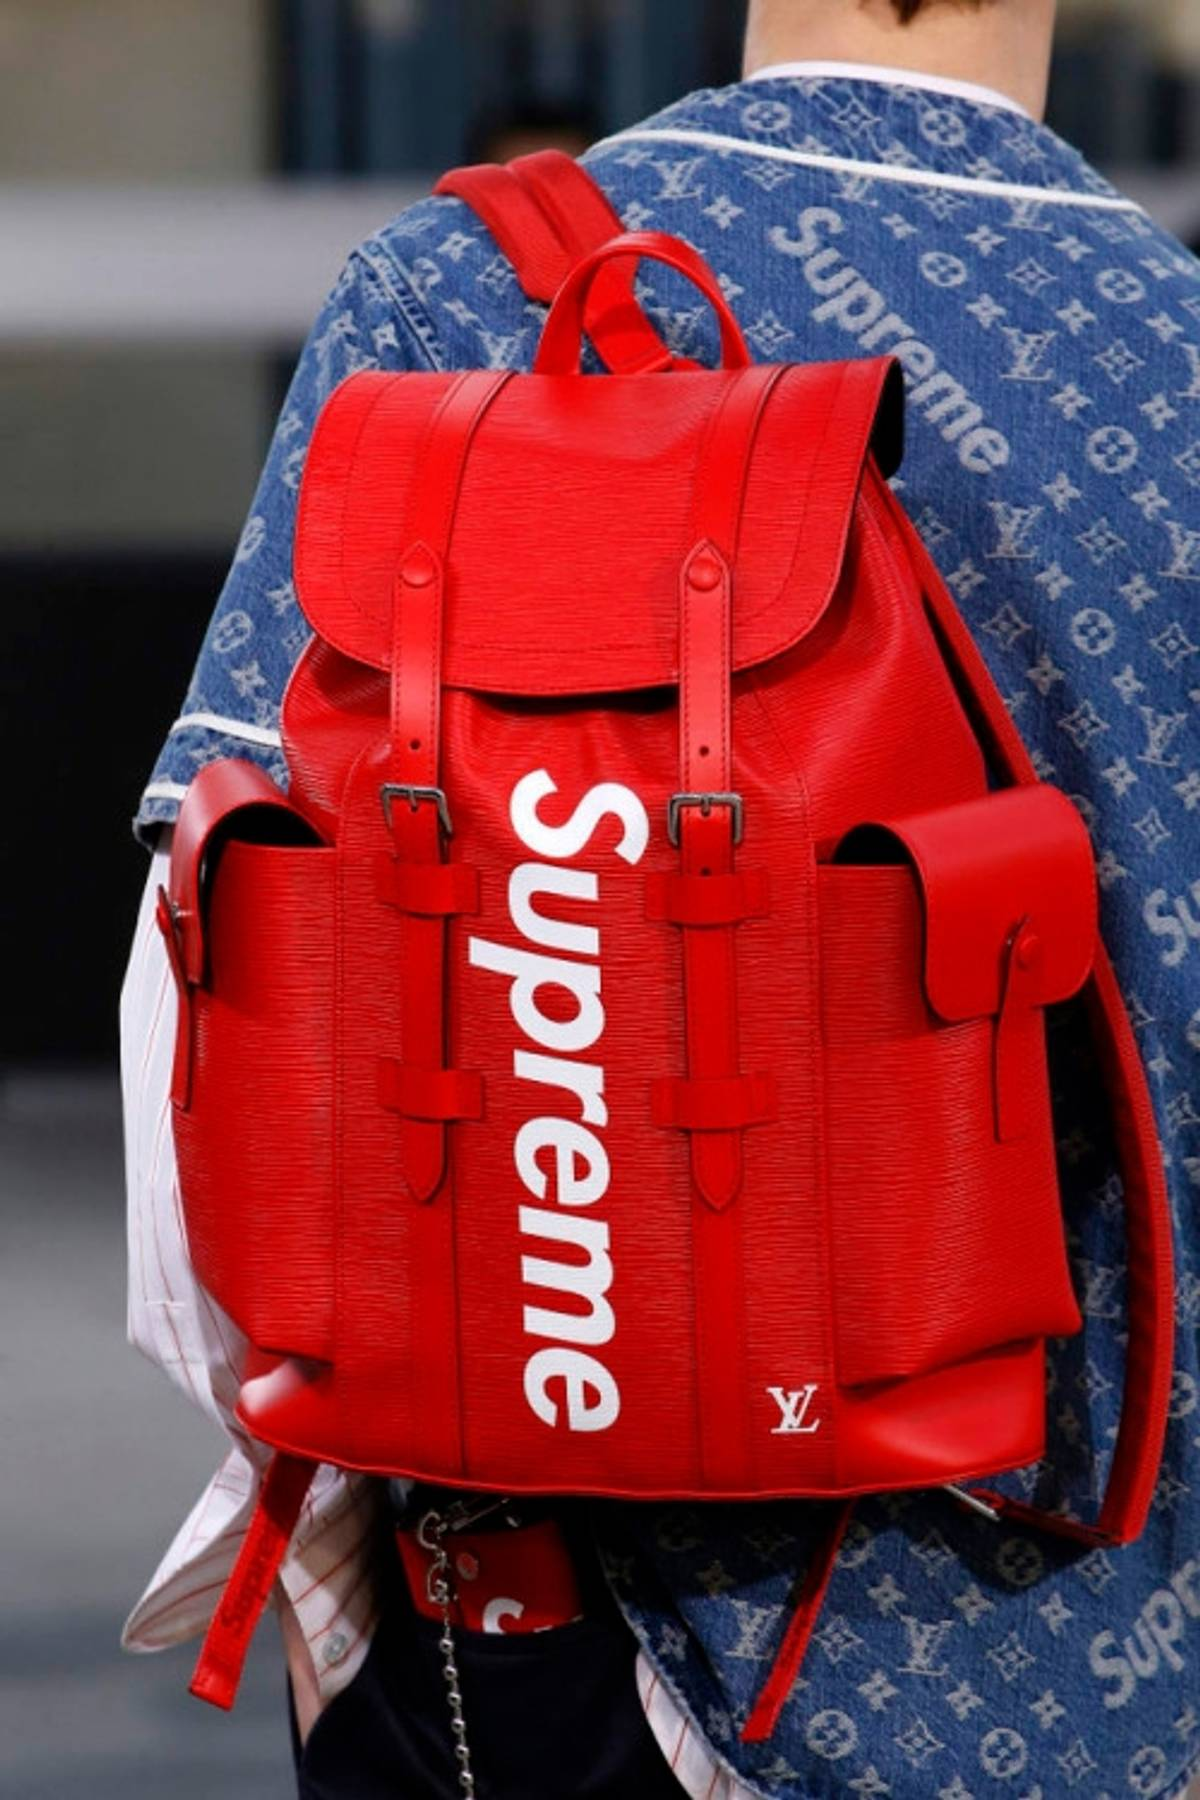 921fb3ec53ab Supreme Christopher Backpack Size one size - Bags   Luggage for Sale -  Grailed